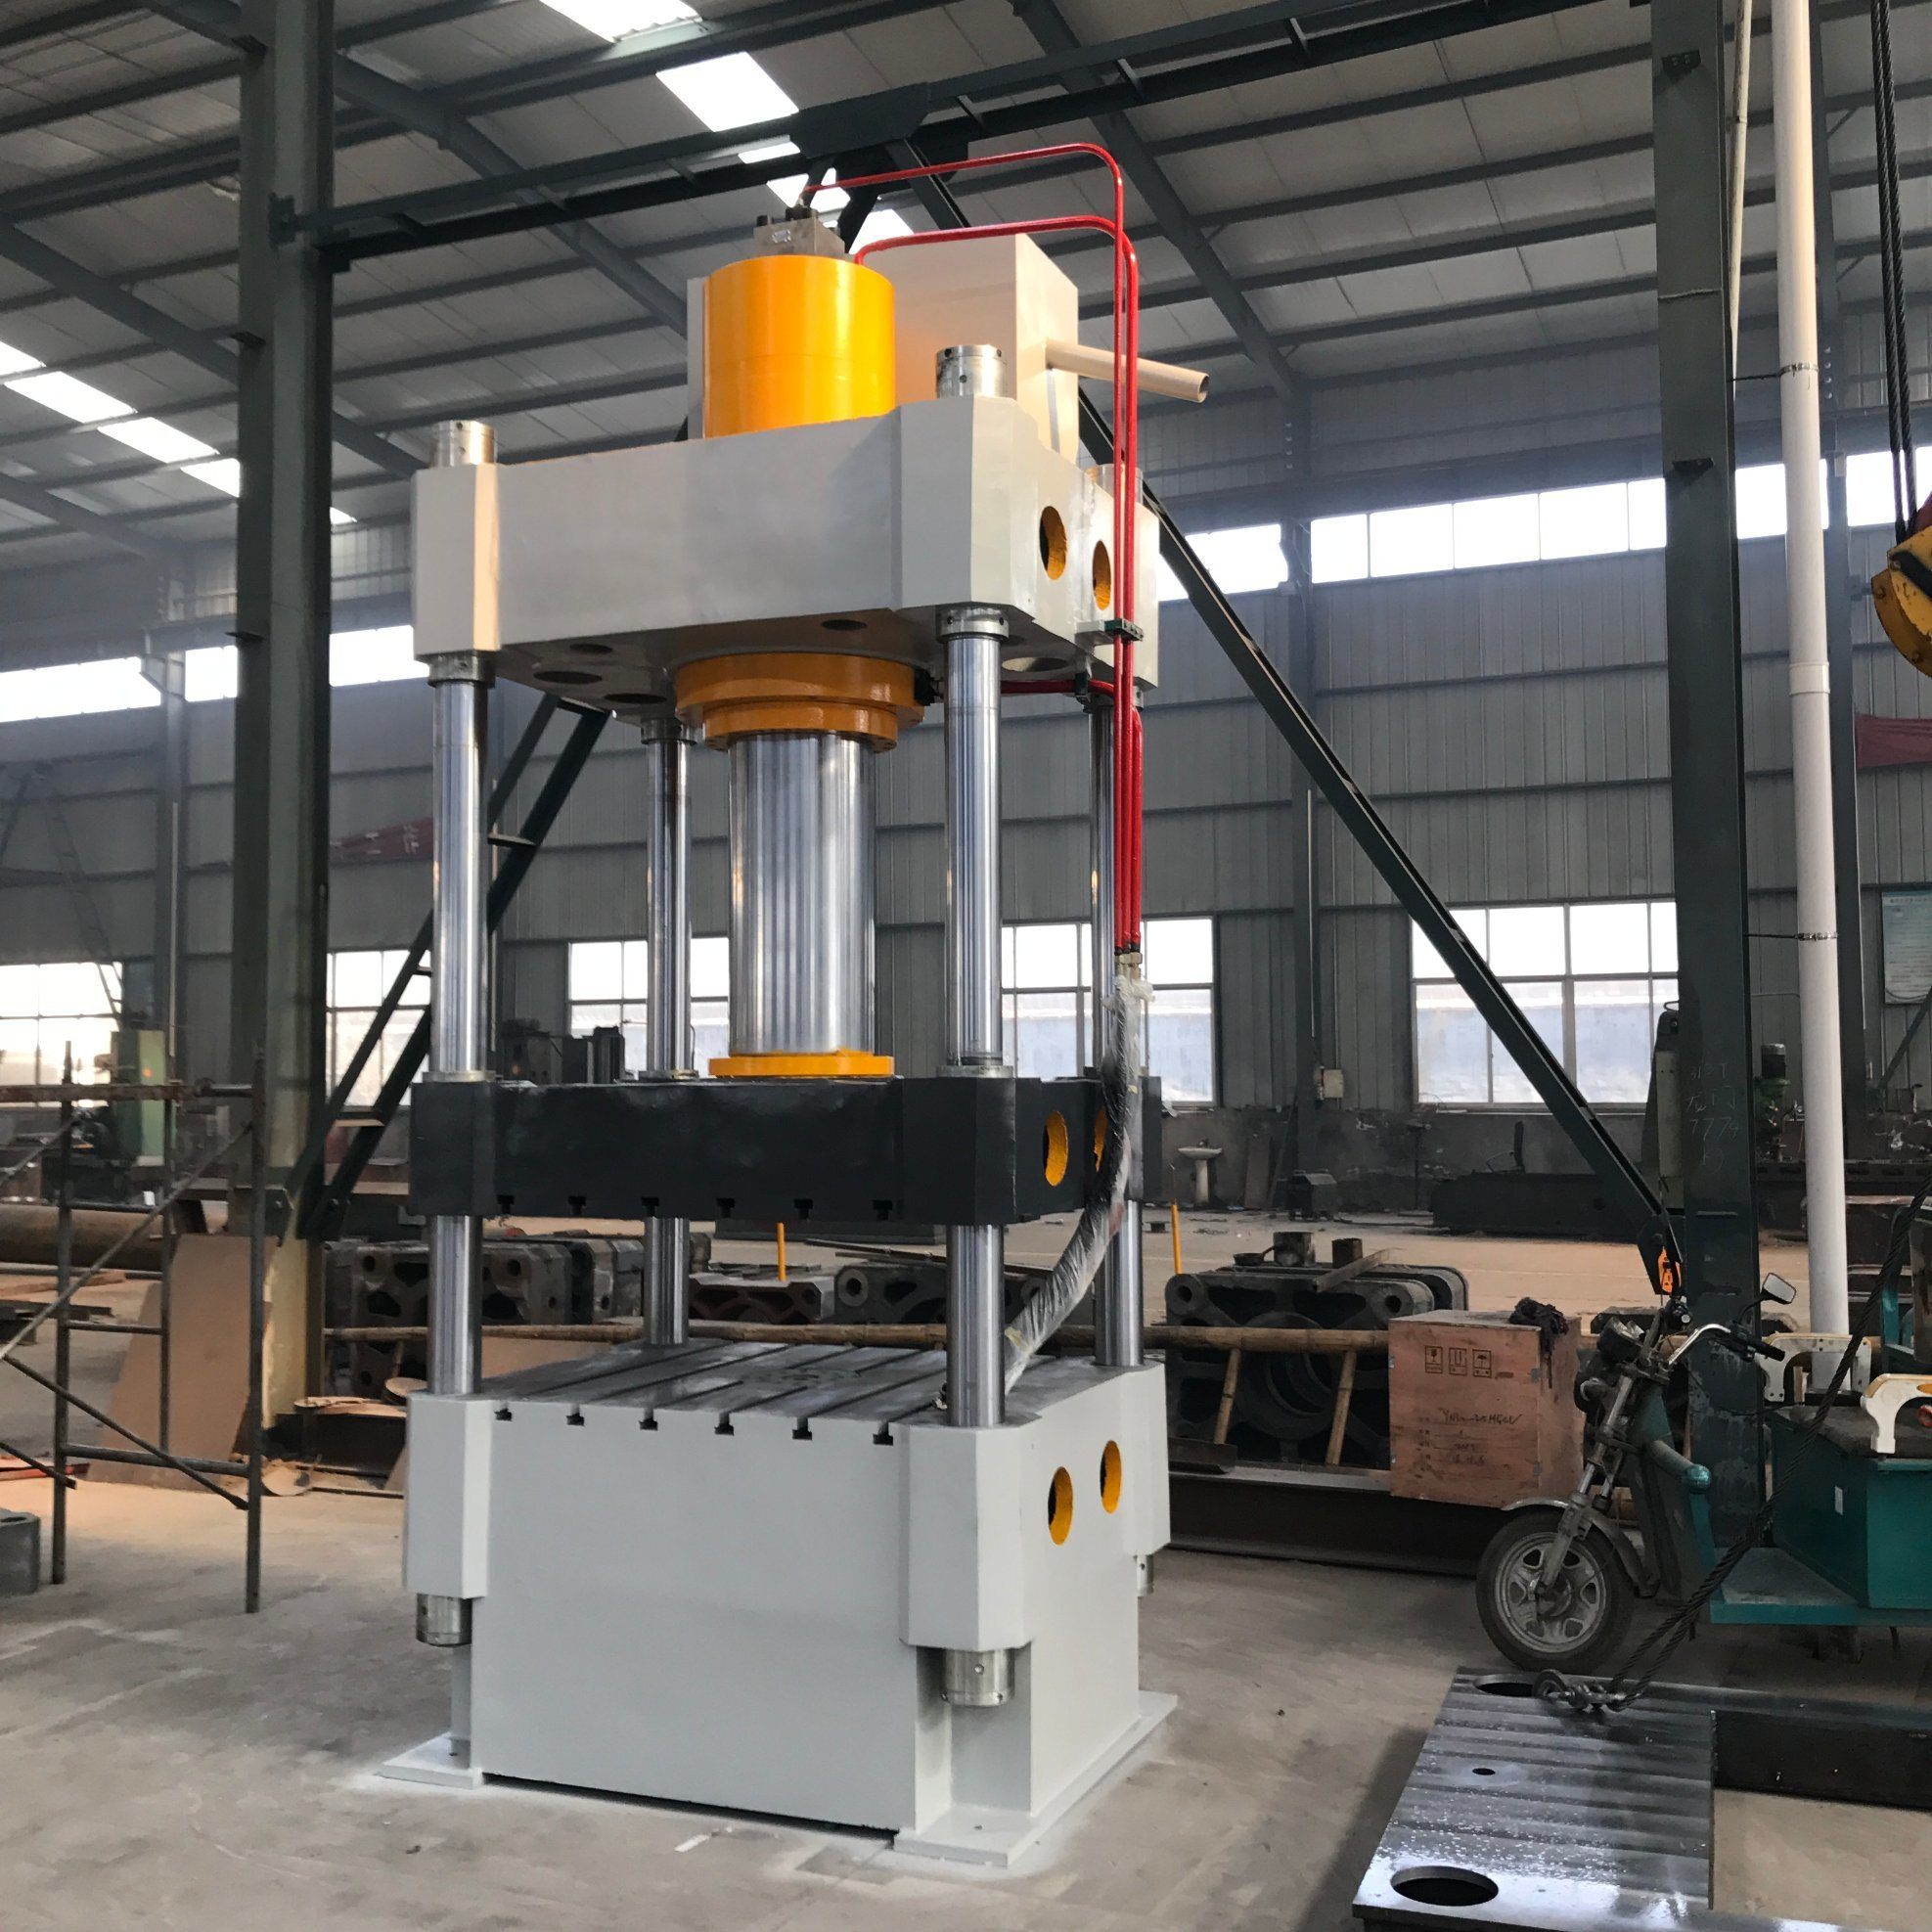 Metal Stamping Machines Factory, Metal Stamping Machines Factory  Manufacturers & Suppliers | Made-in-China com